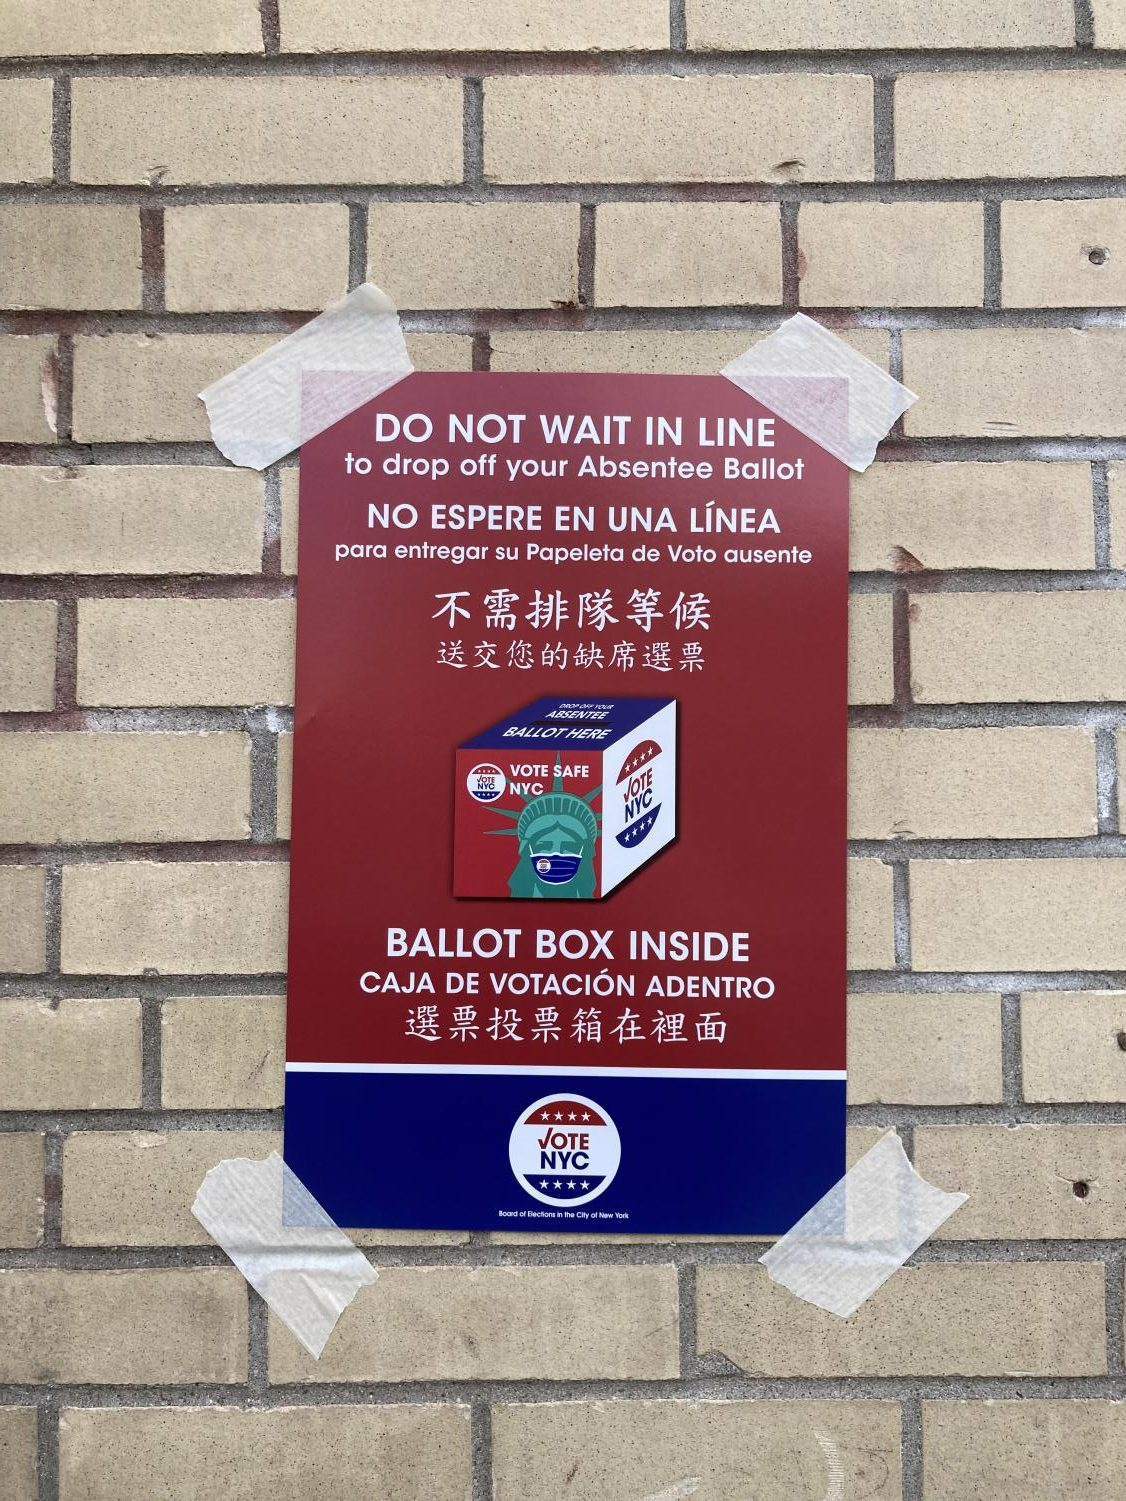 """a sign that reads """"do not wait in line to drop off your absentee ballot. Ballot box inside"""""""